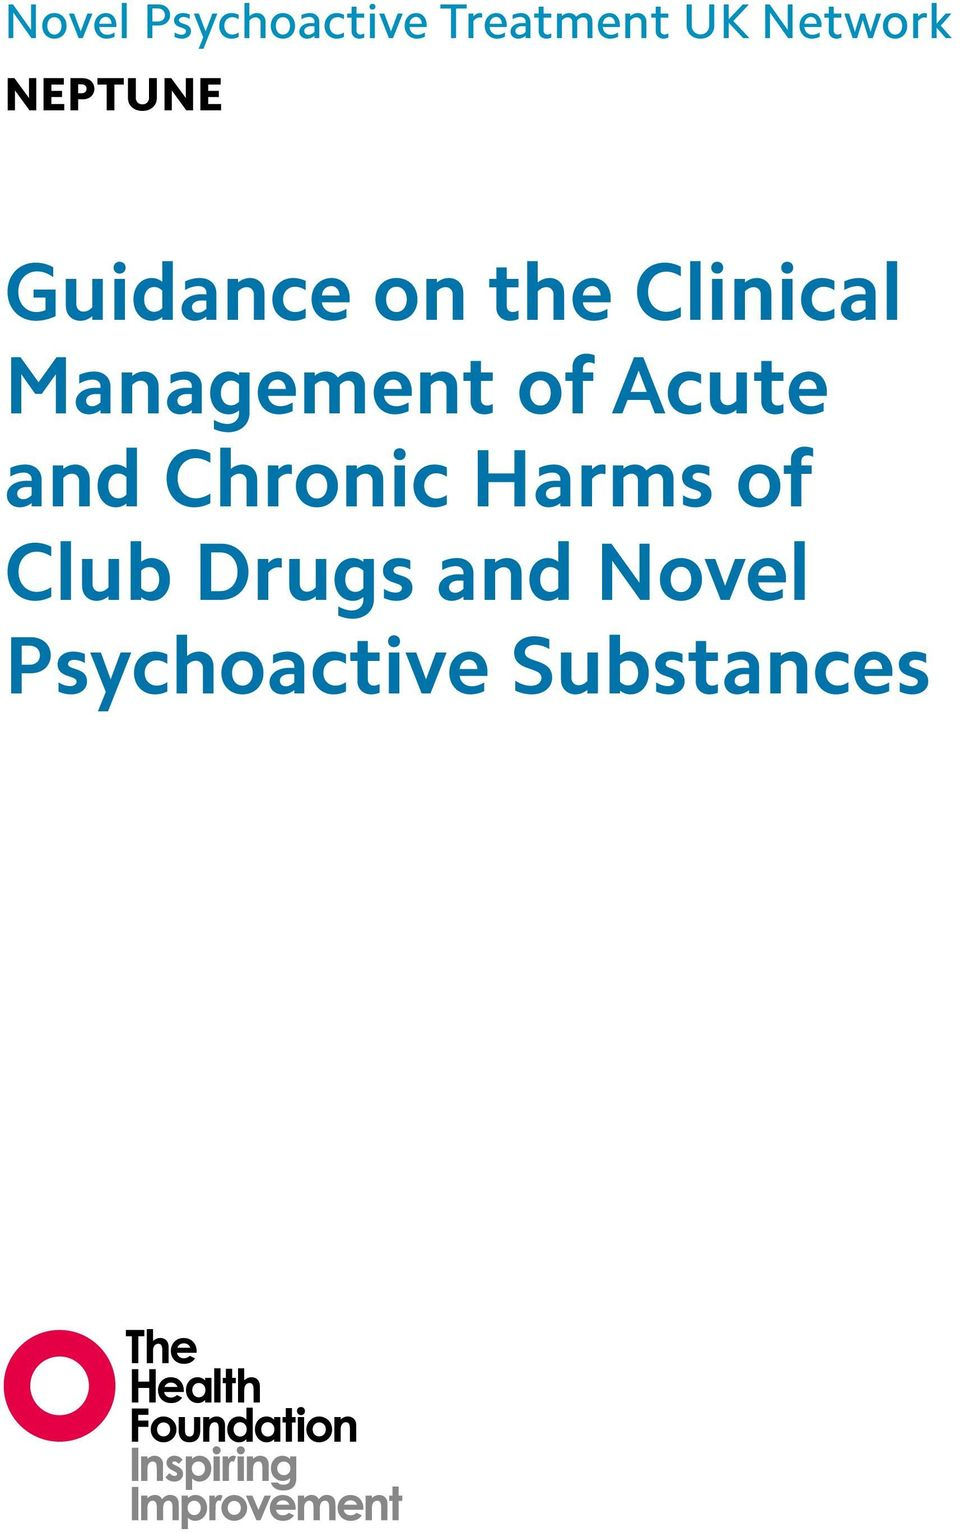 Management of Acute and Chronic Harms